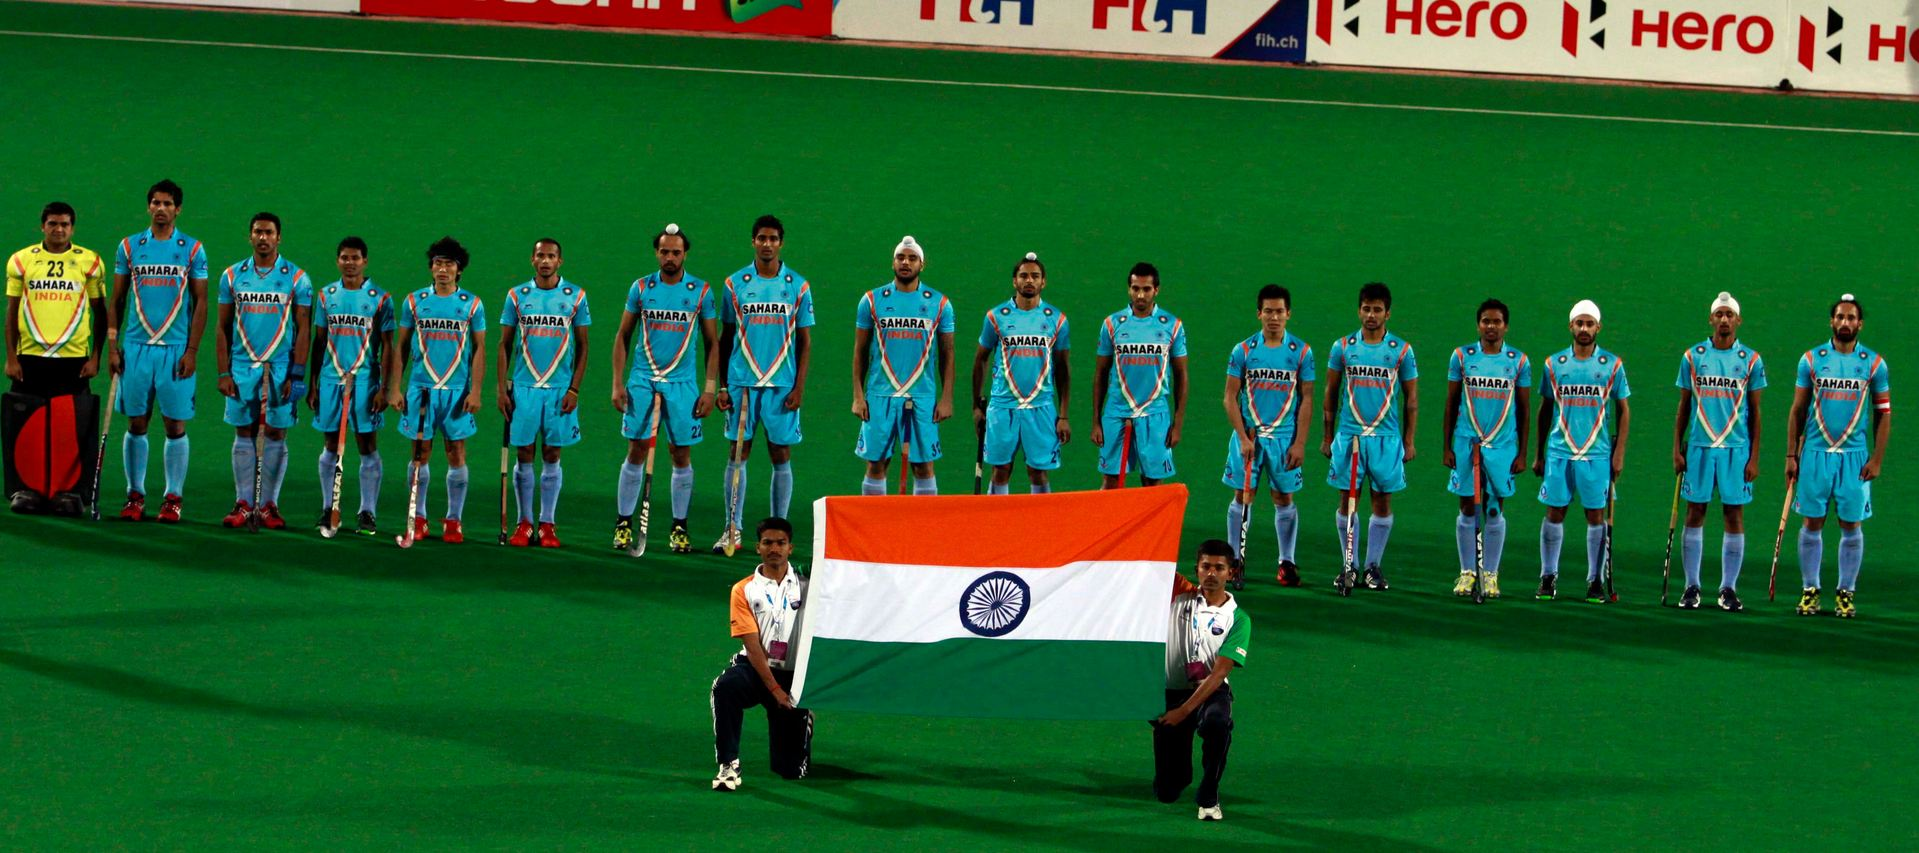 Indian Hockey Team with Indian flag